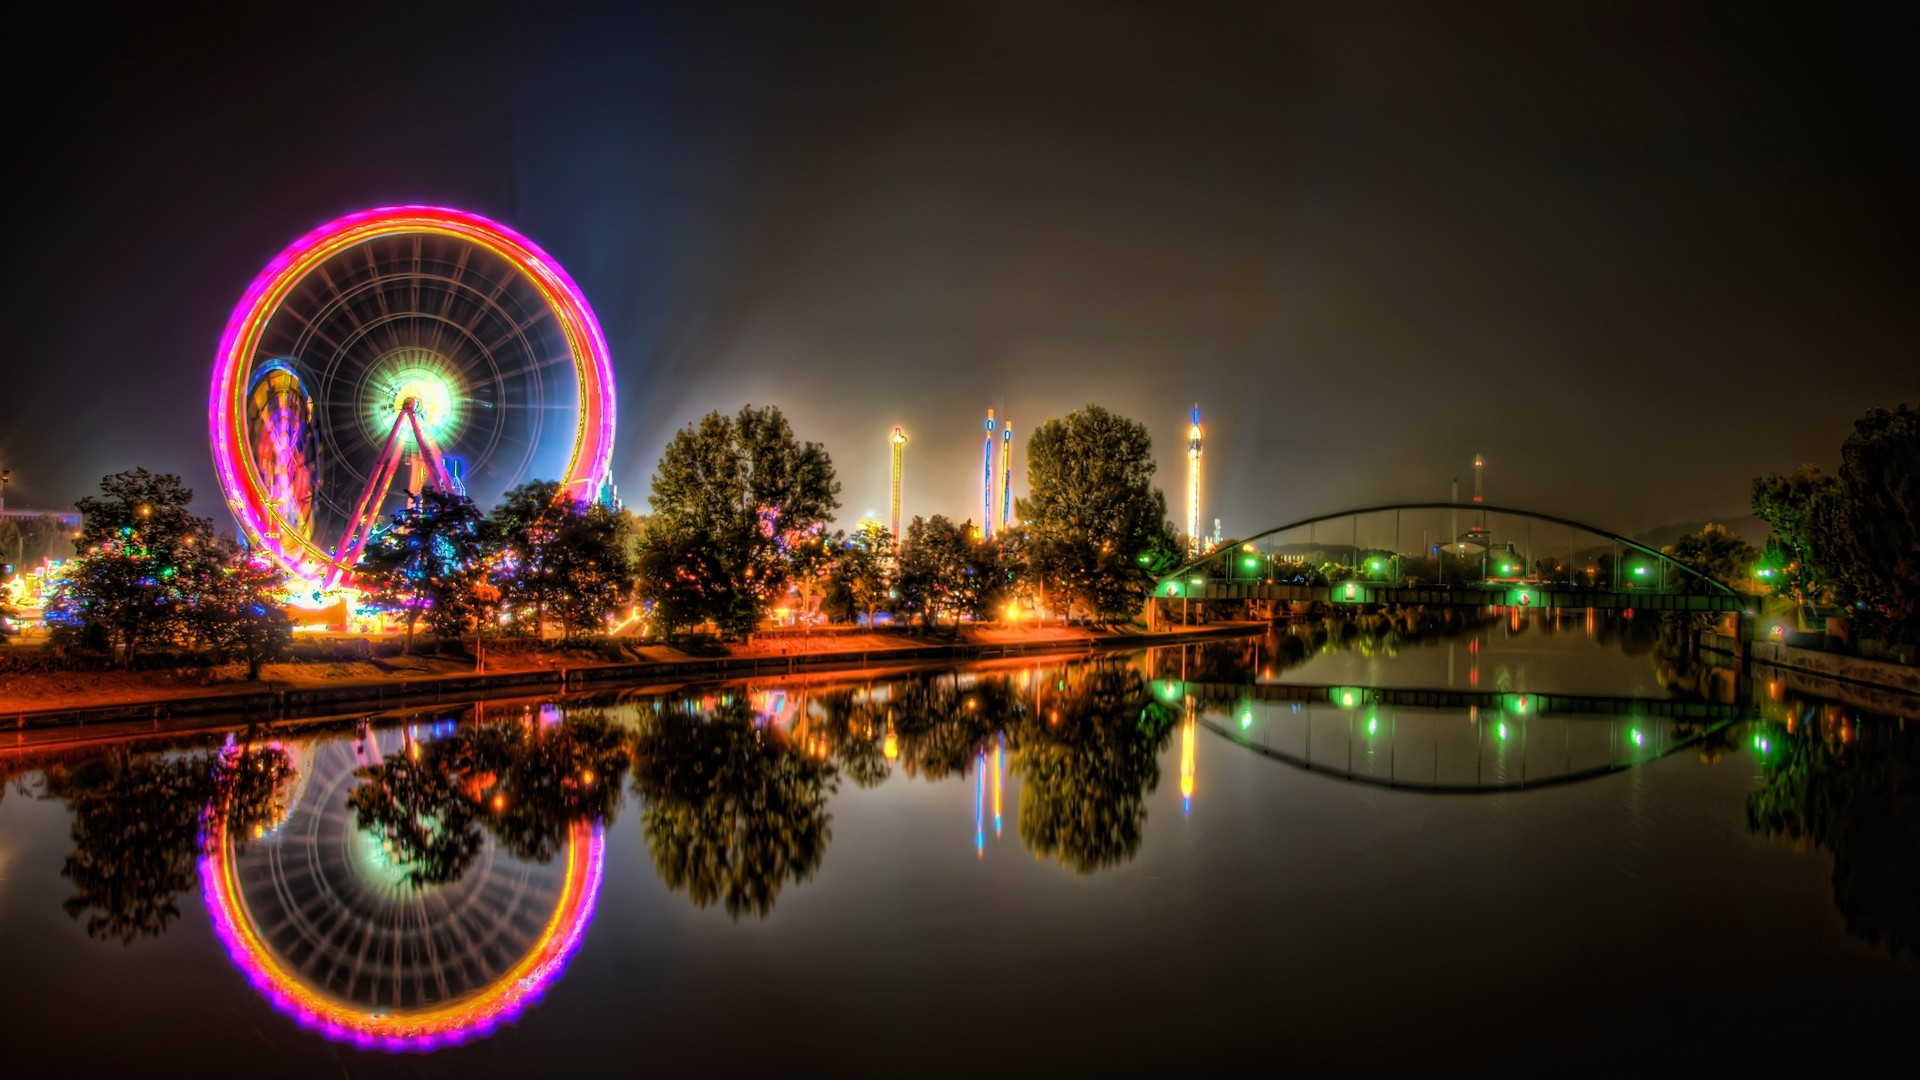 amusement-parks-by-a-river-at-night-hdr-295576